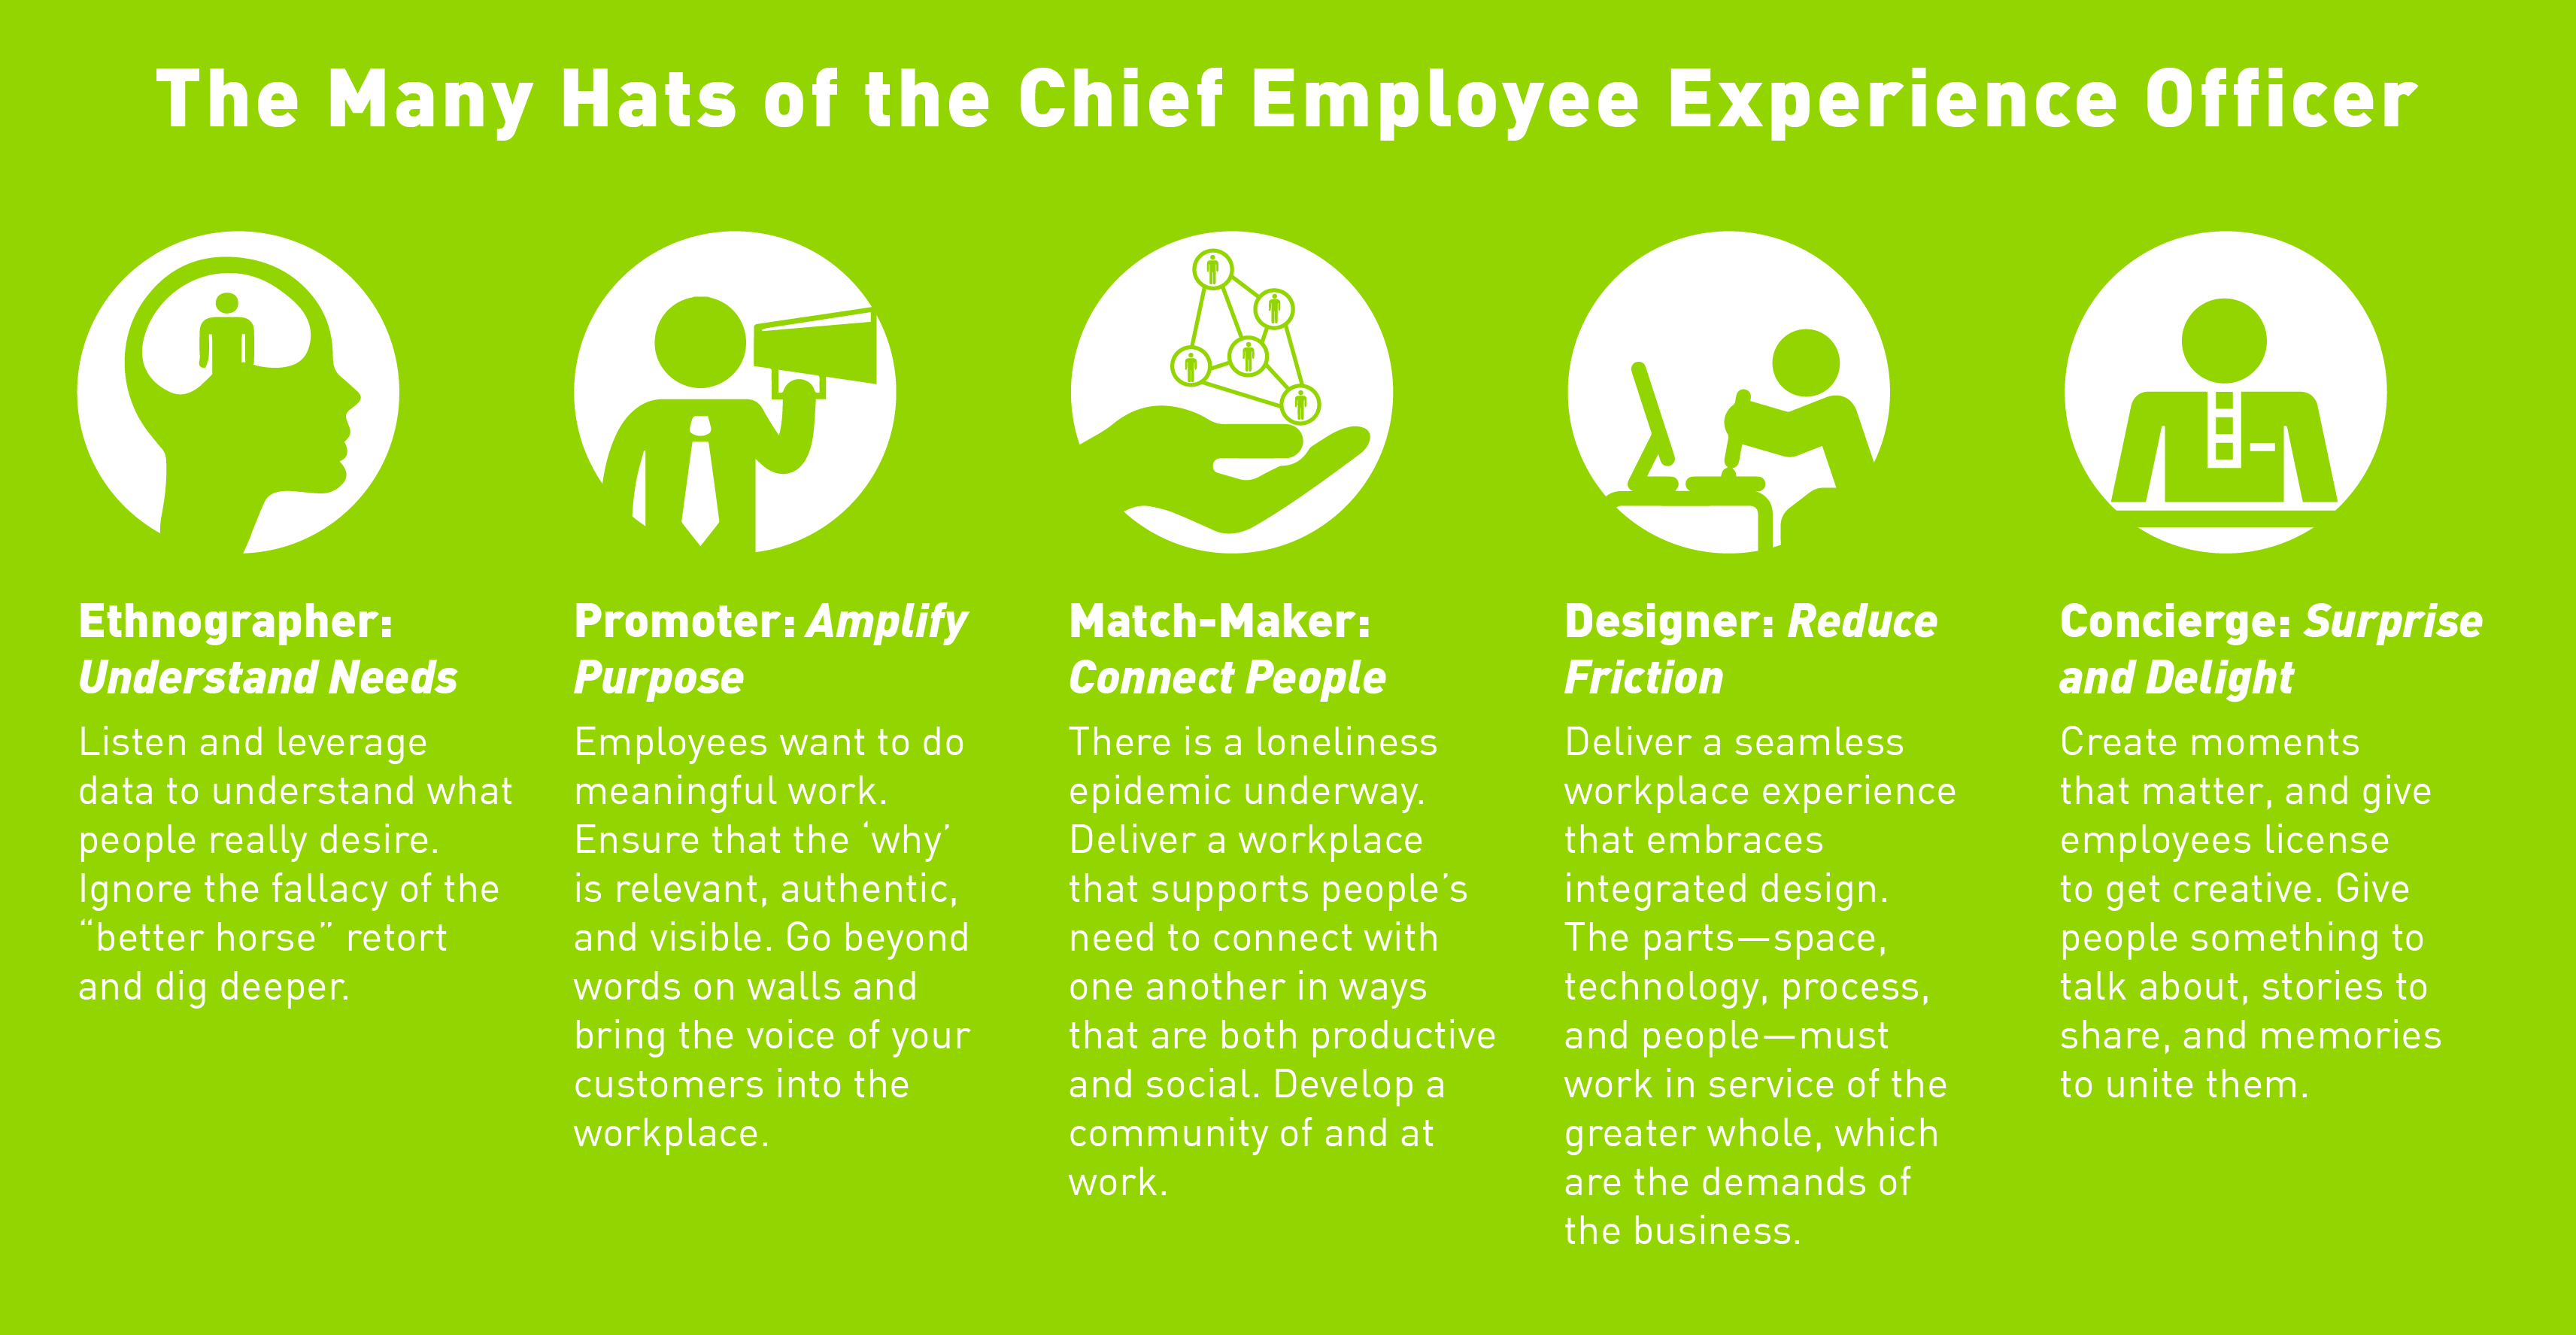 Responsibilities of a typical chief employee experience officer